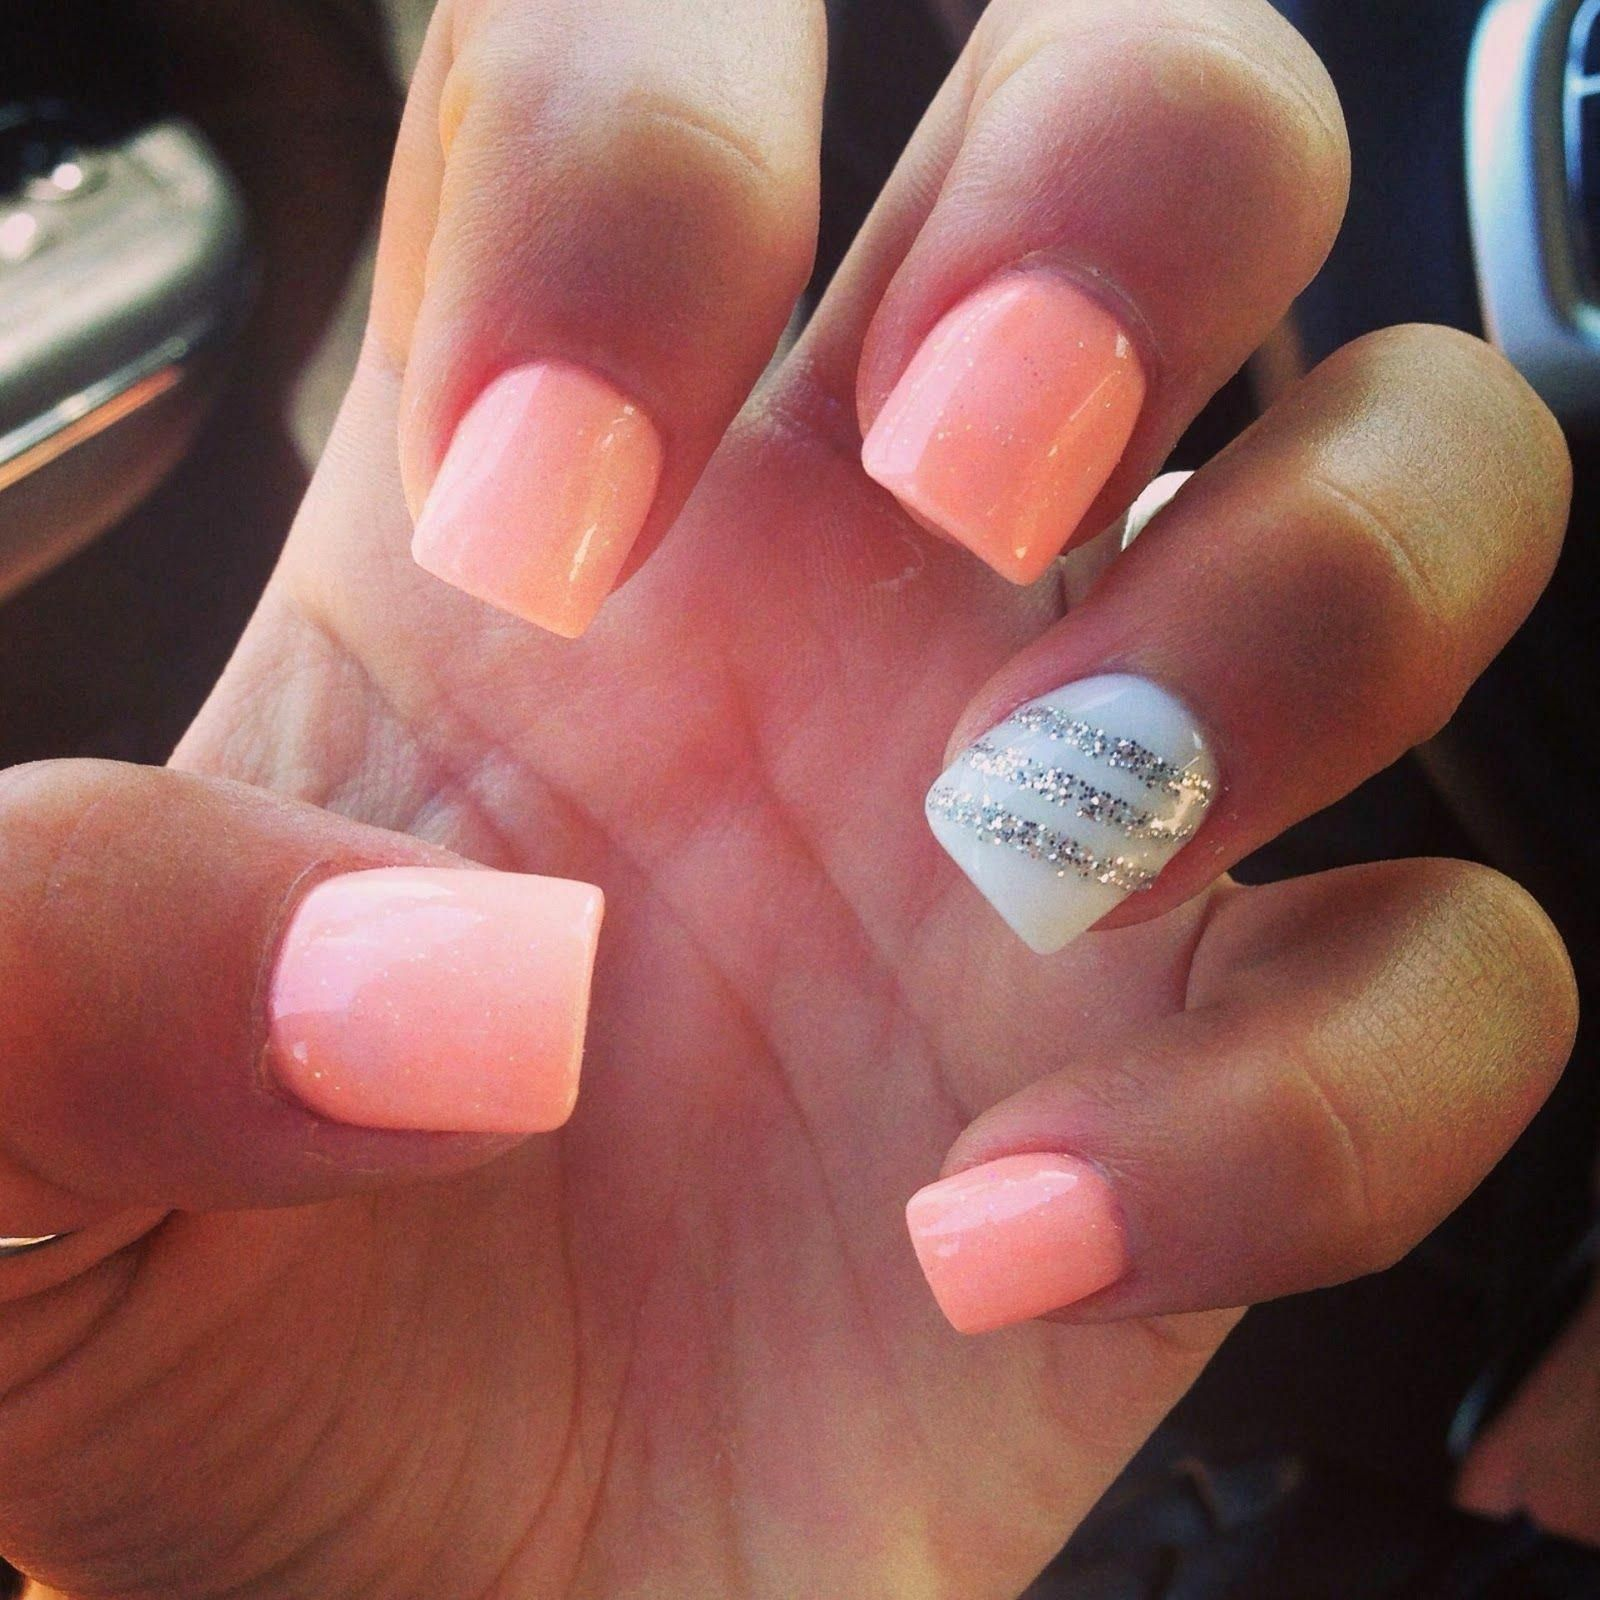 Summer Nails Acrylic Acrylic Nails Designs For Summer Be It Short Long Almond Shaped Stiletto In 2020 Easter Nail Designs Nail Designs Summer Acrylic Easter Nails